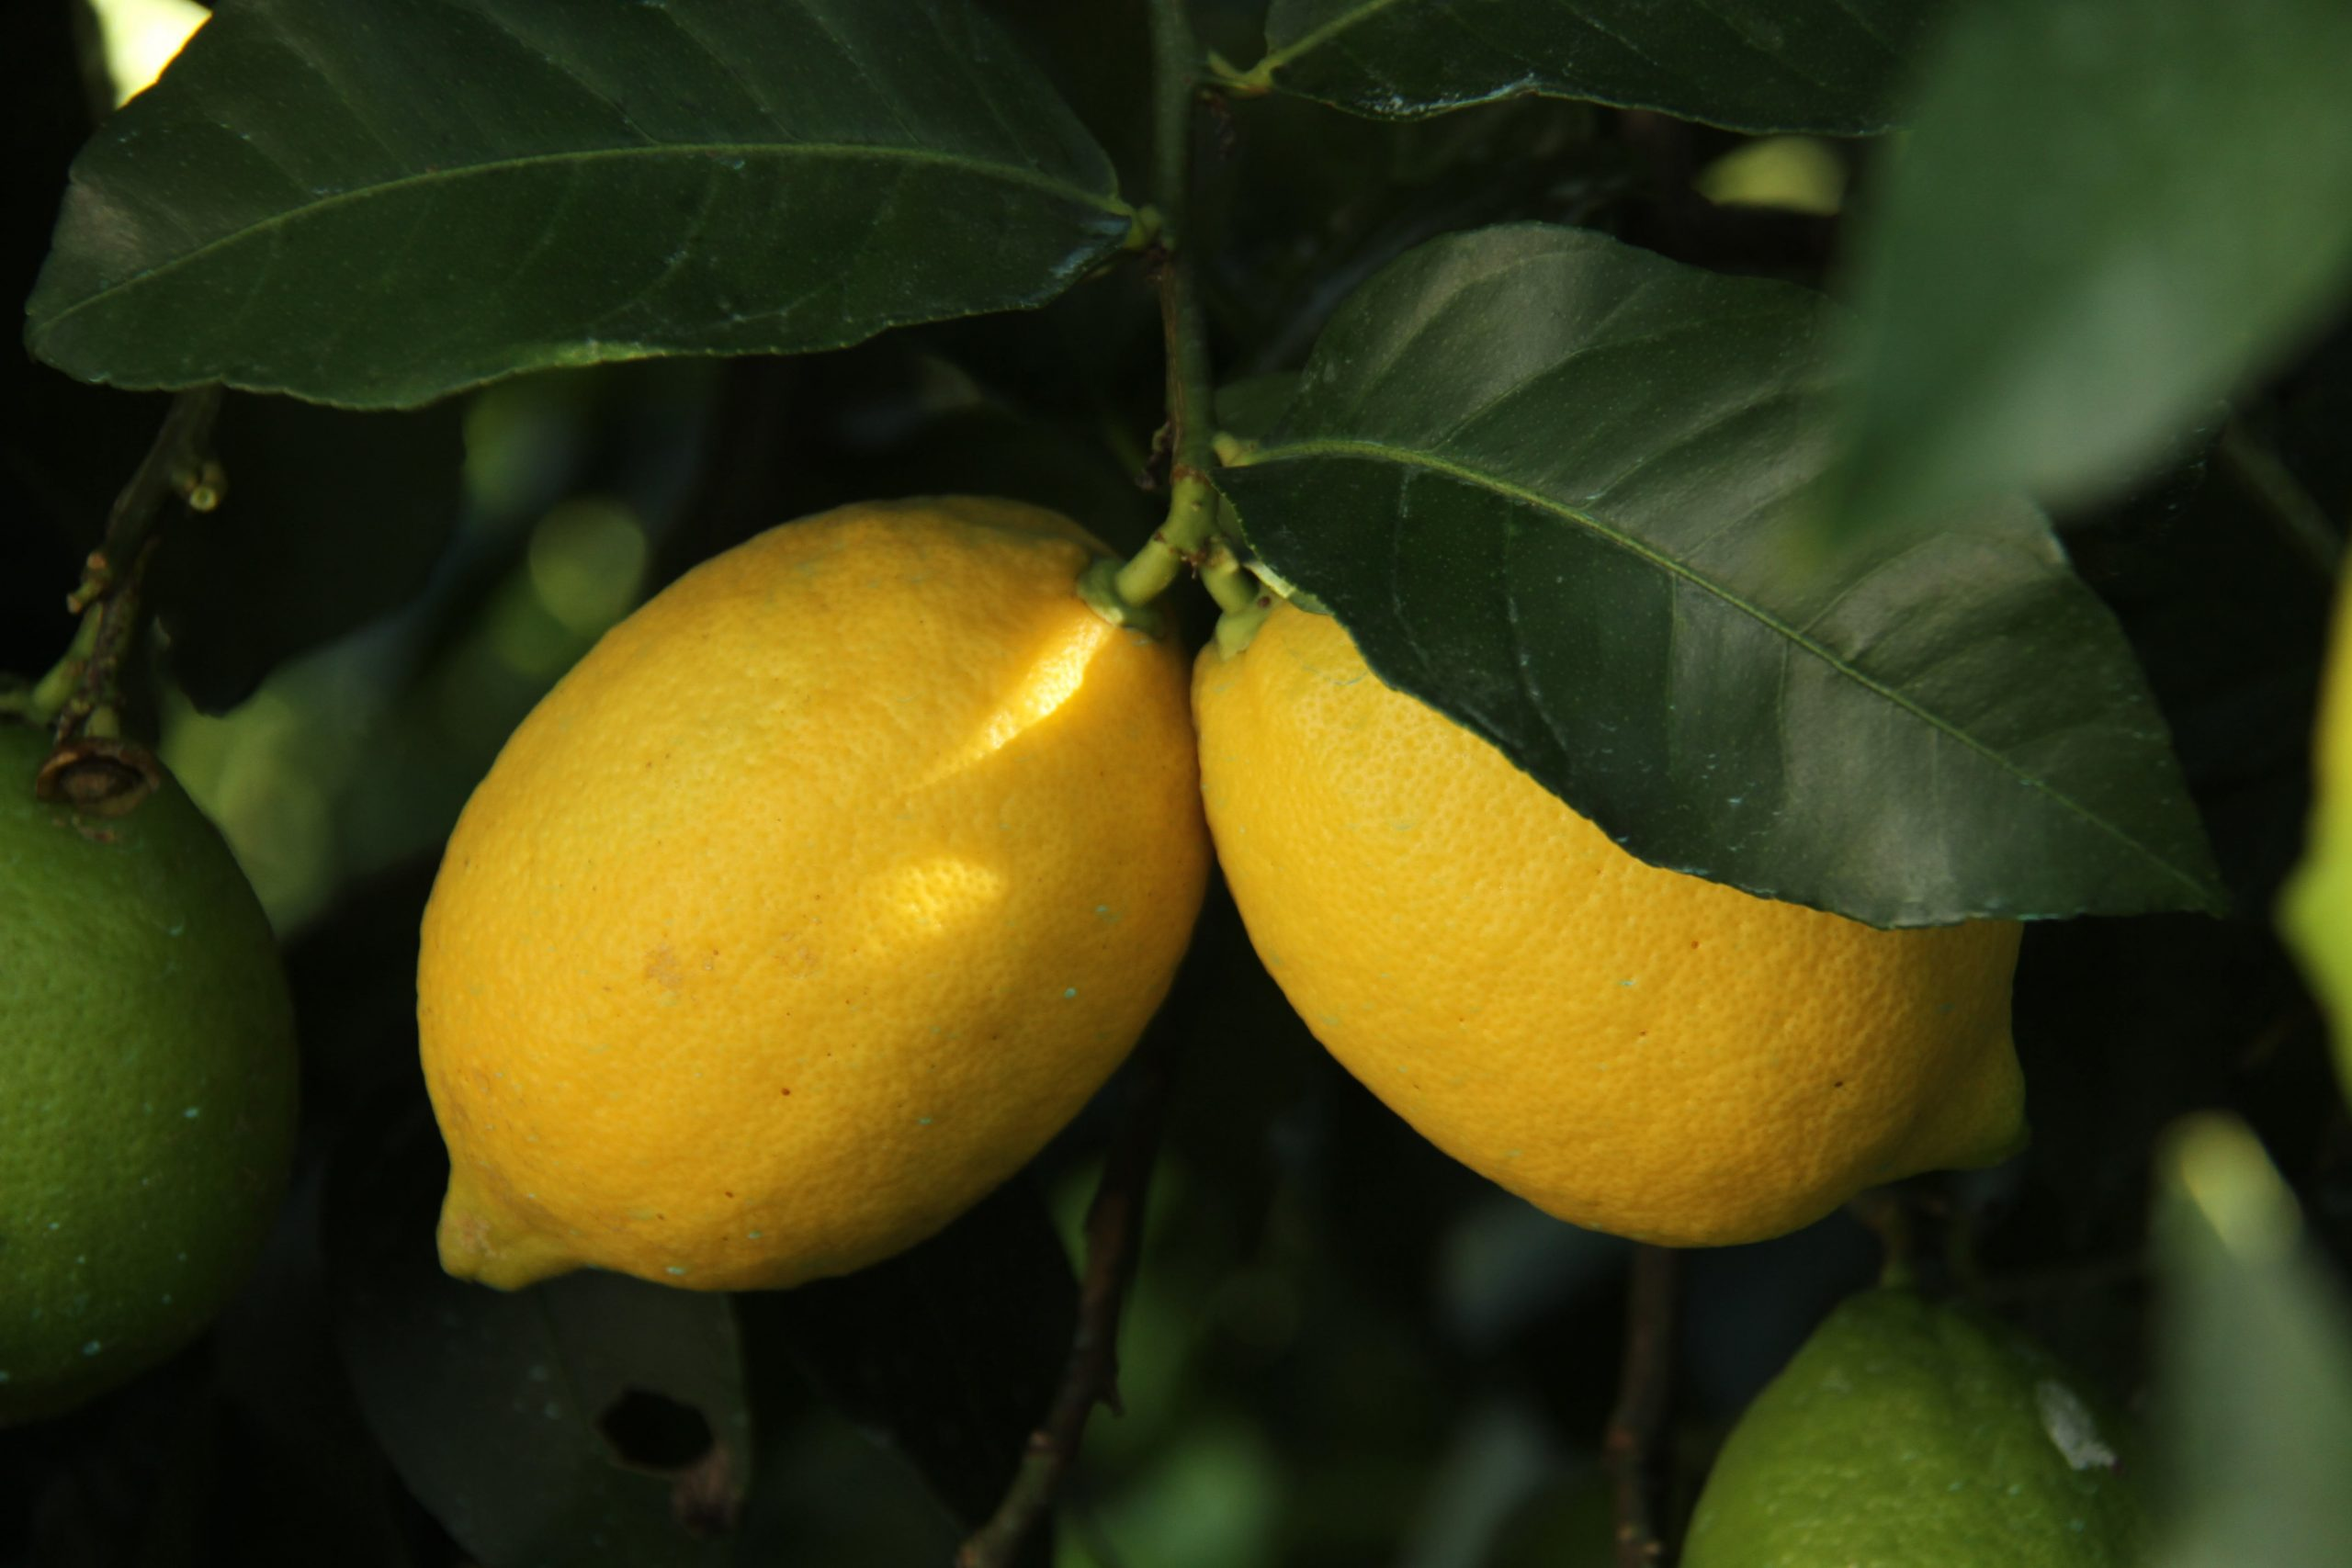 Lower citrus imports to Japan in 2020/21 as domestic crop recovers